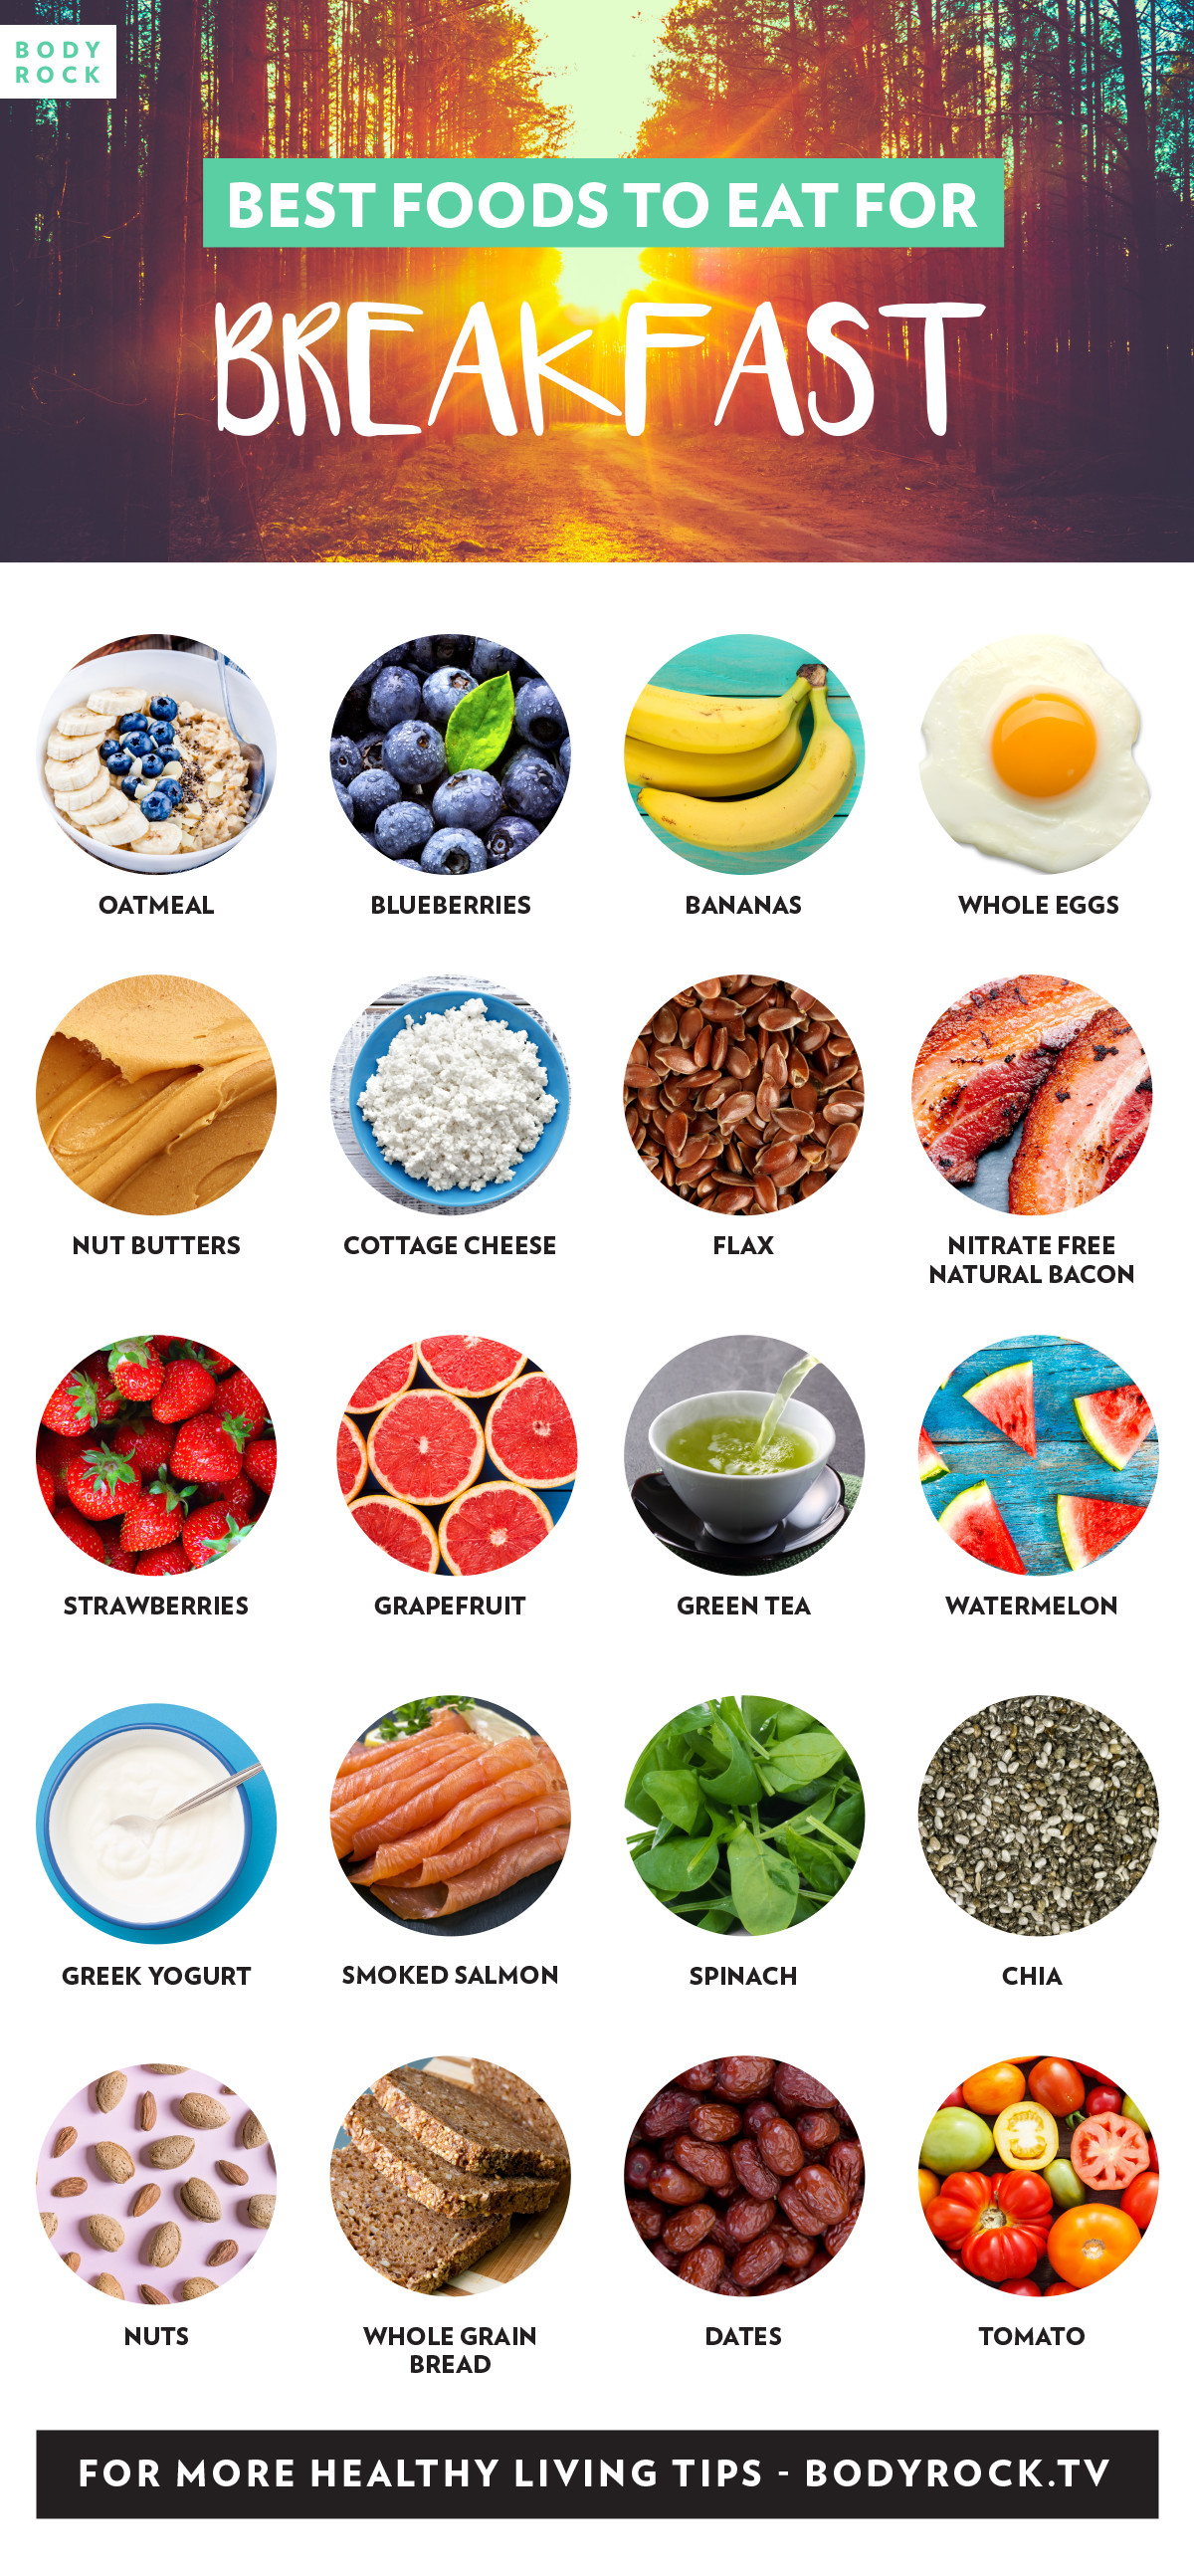 Healthy Foods To Eat For Breakfast  Best Foods To Eat For Breakfast